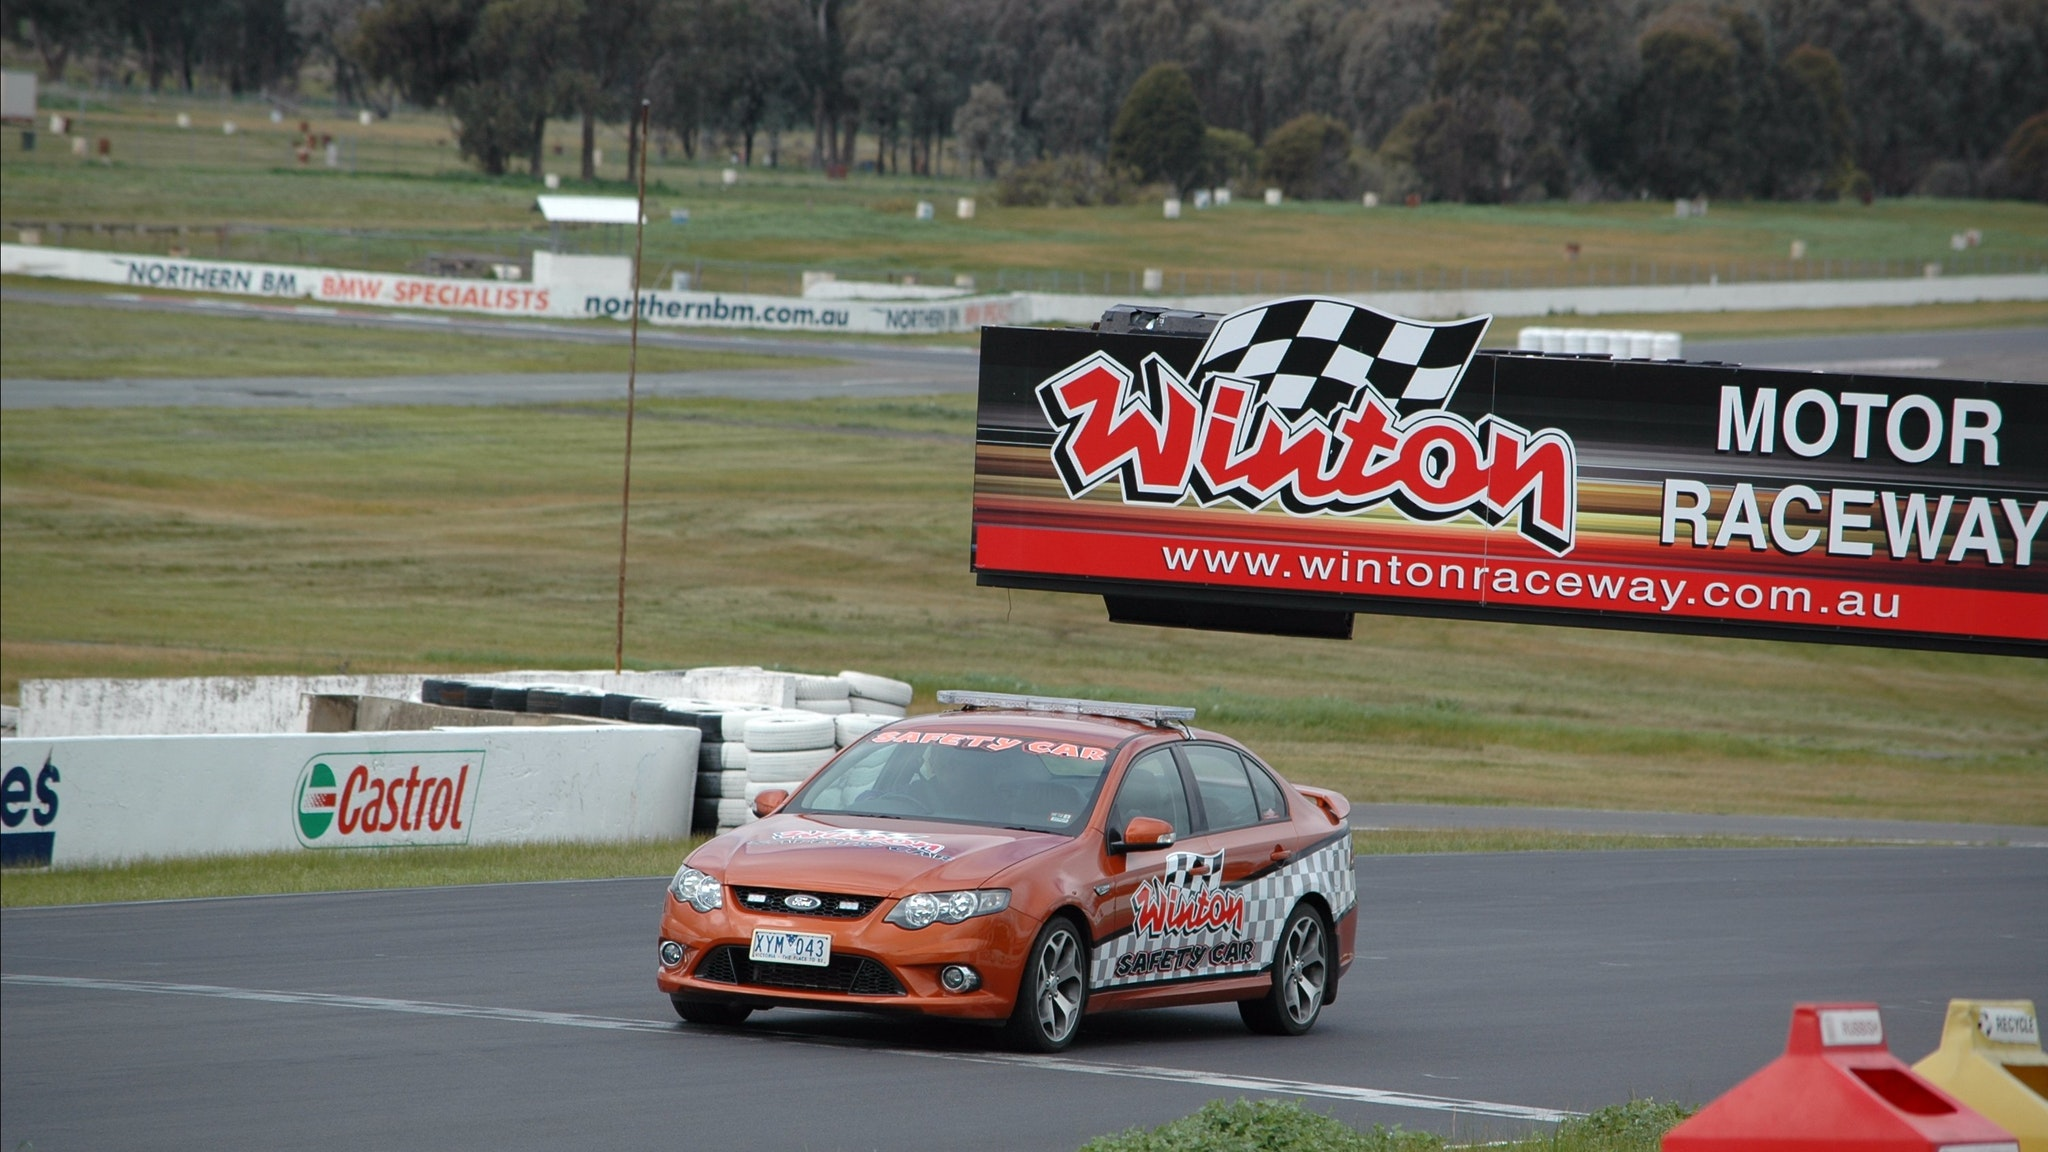 Winton Rush